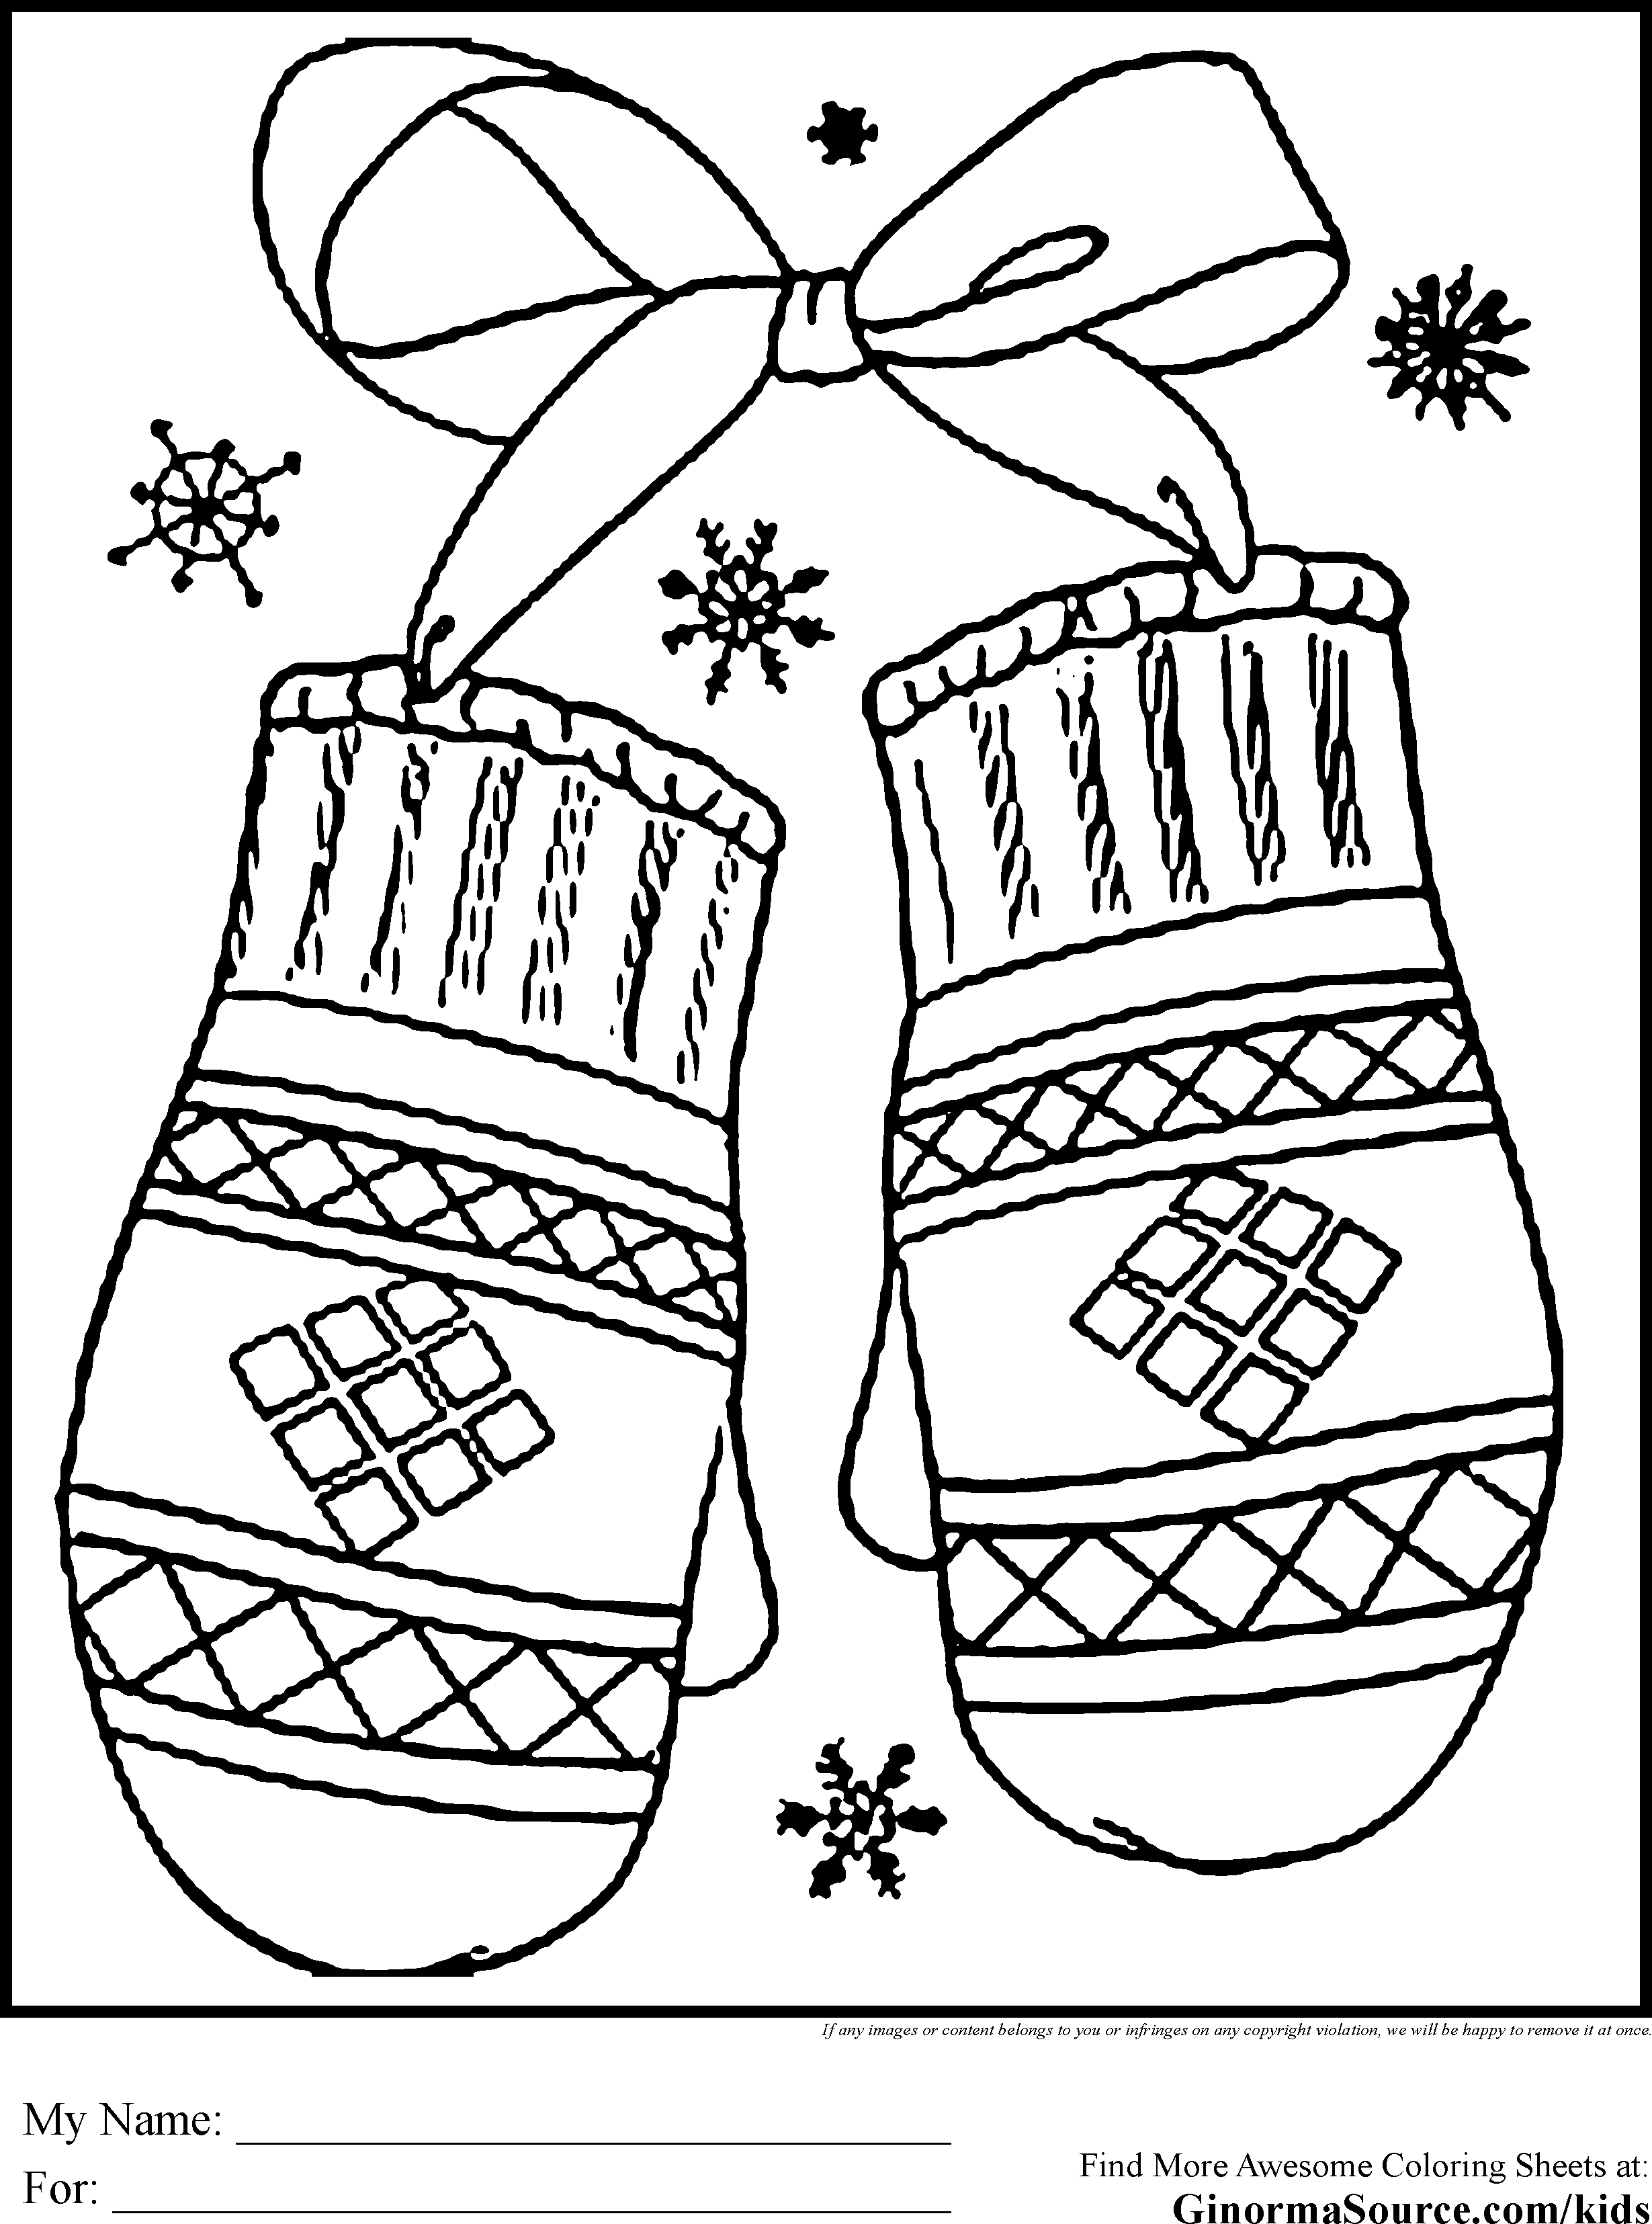 Winter Coloring Pages for Preschool - Winter Coloring Pages for Preschool Timeless Miracle